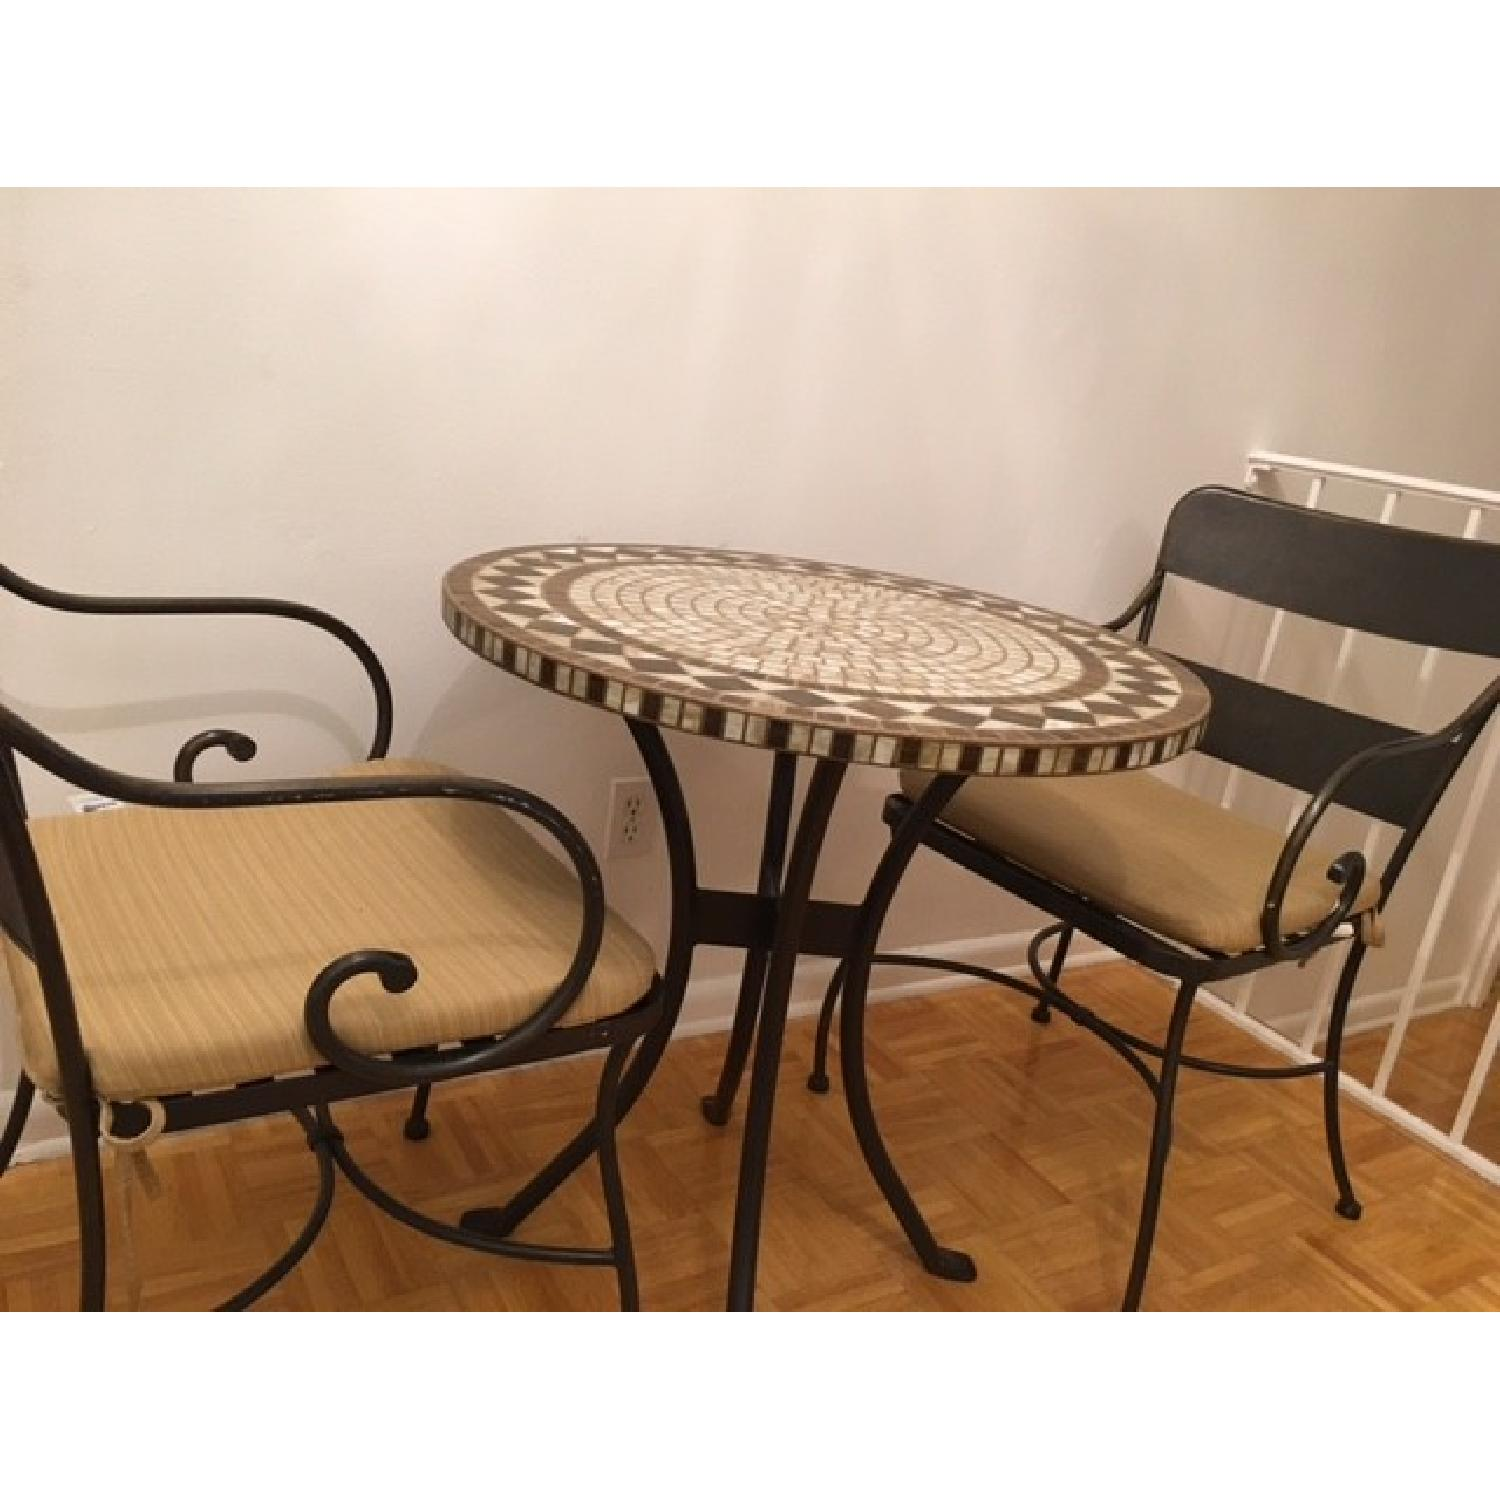 Mosaic Patio Table w/ 2 Chairs - image-2